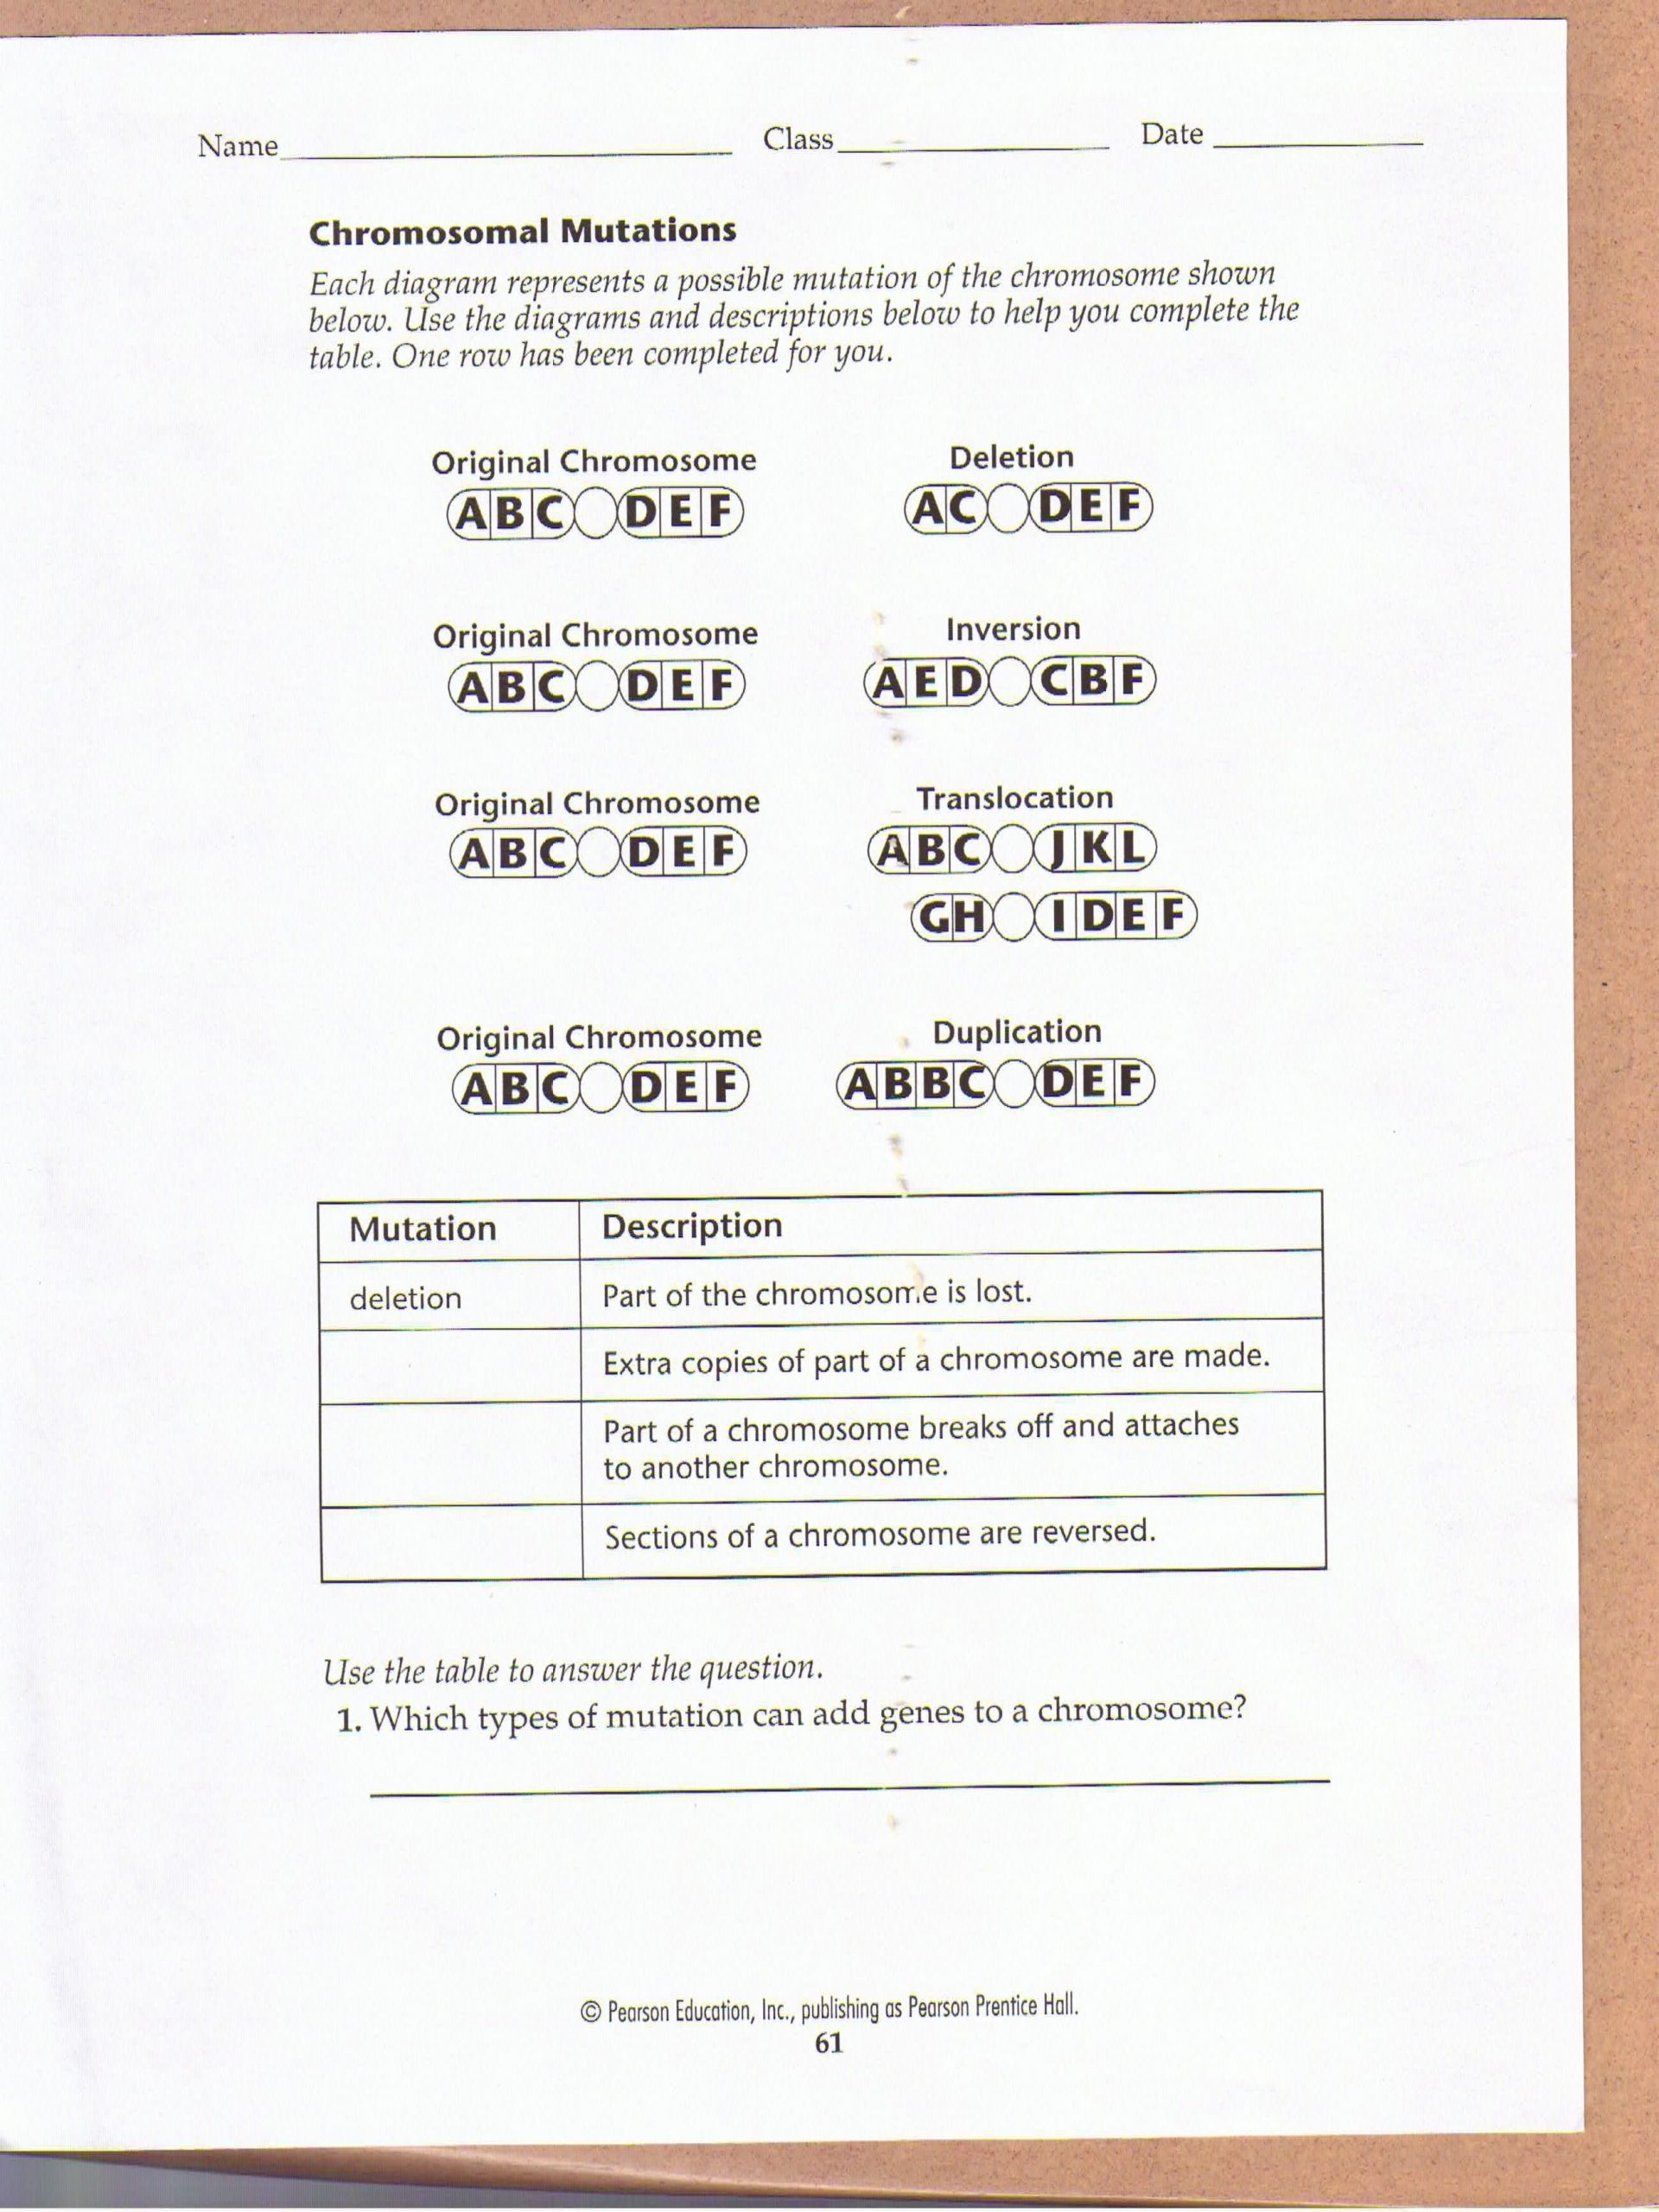 Mutations Worksheet Middle School Chromosomal Mutations Worksheet